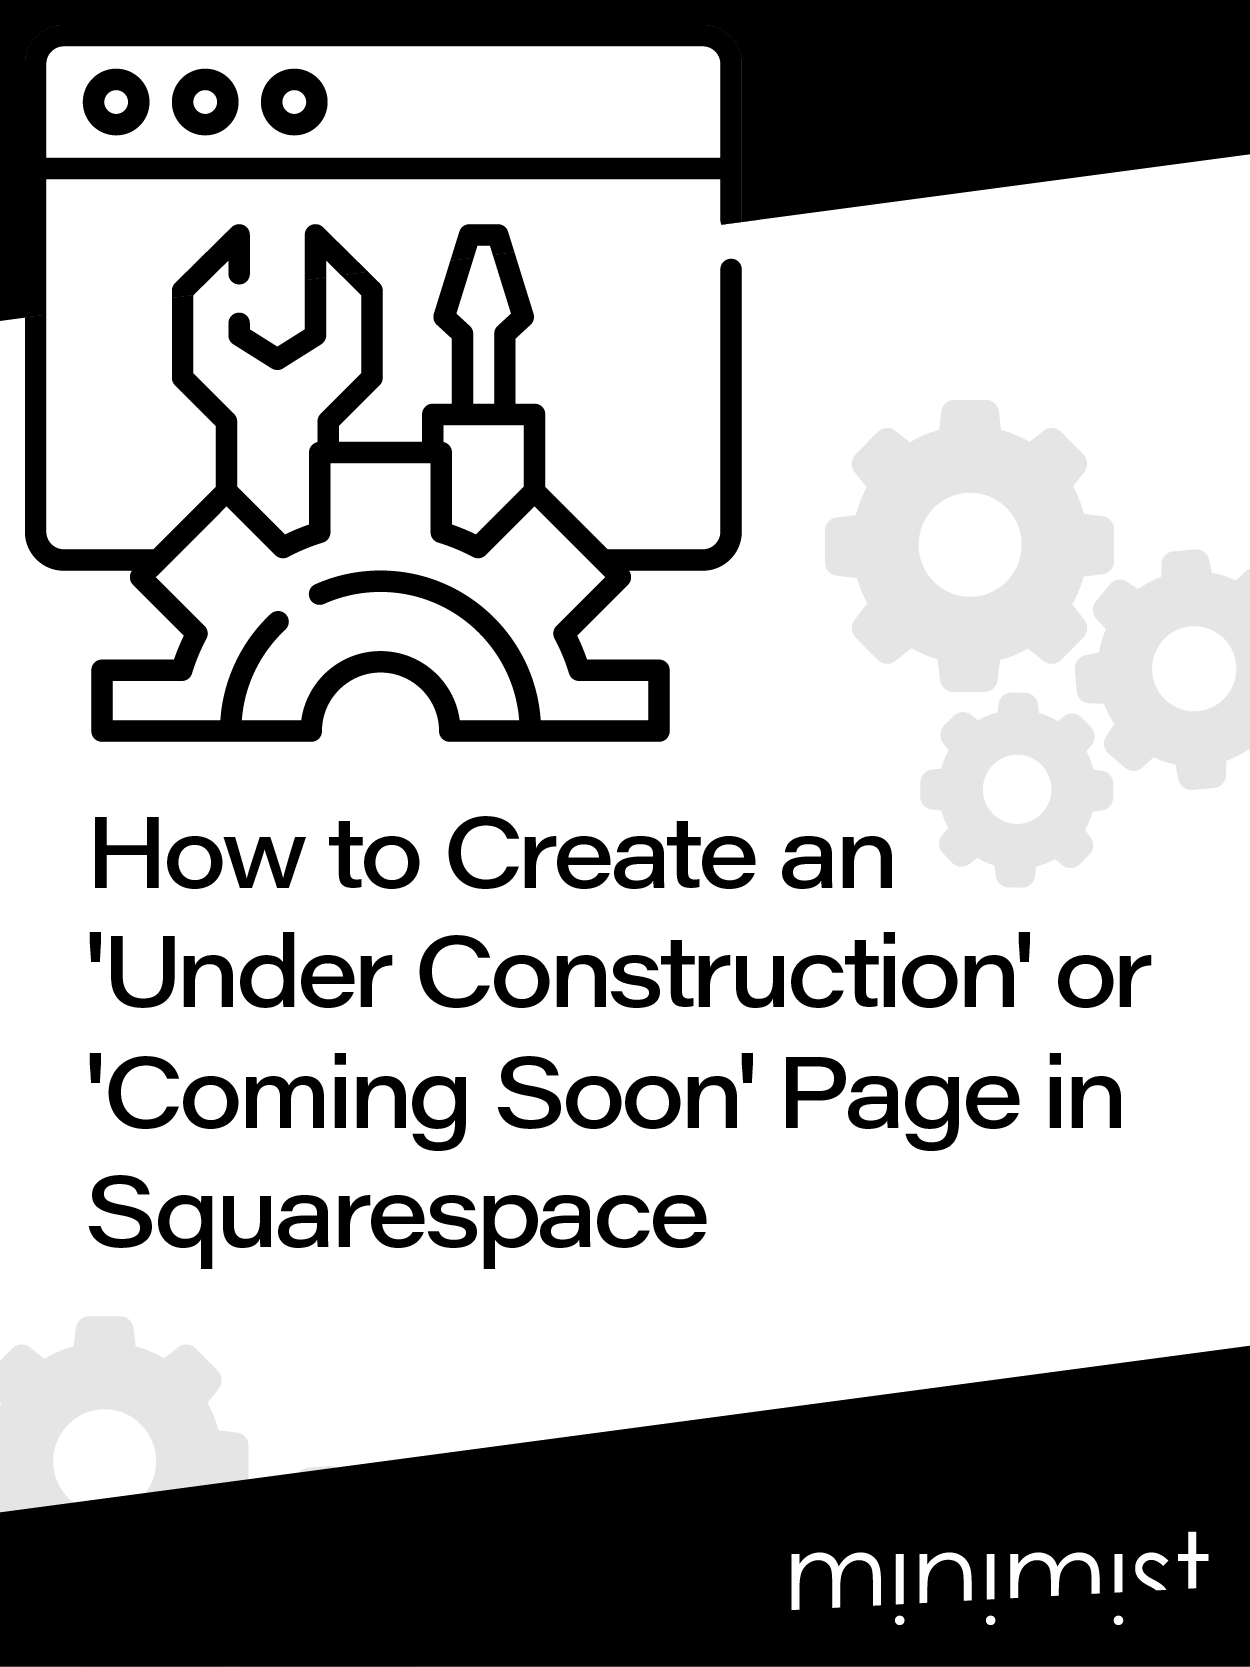 How to Create an 'Under Construction' or 'Coming Soon' Page in Squarespace